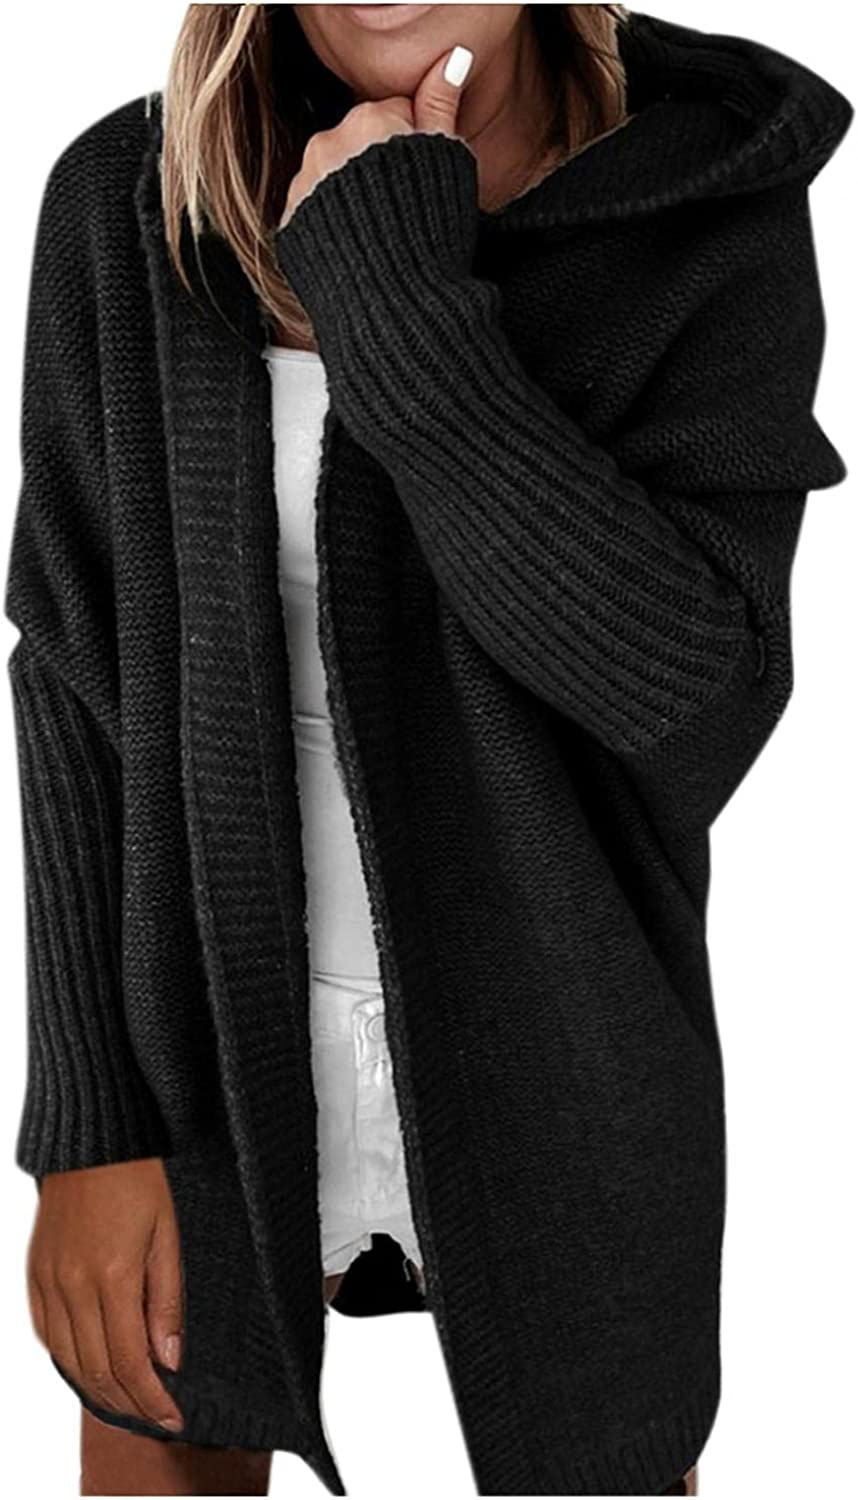 Women's Plus Size Fuzzy Sweater Coat Autumn Winter Solid Color Hooded Open Stitch Batwing Sleeve Thick Cardigan Coat